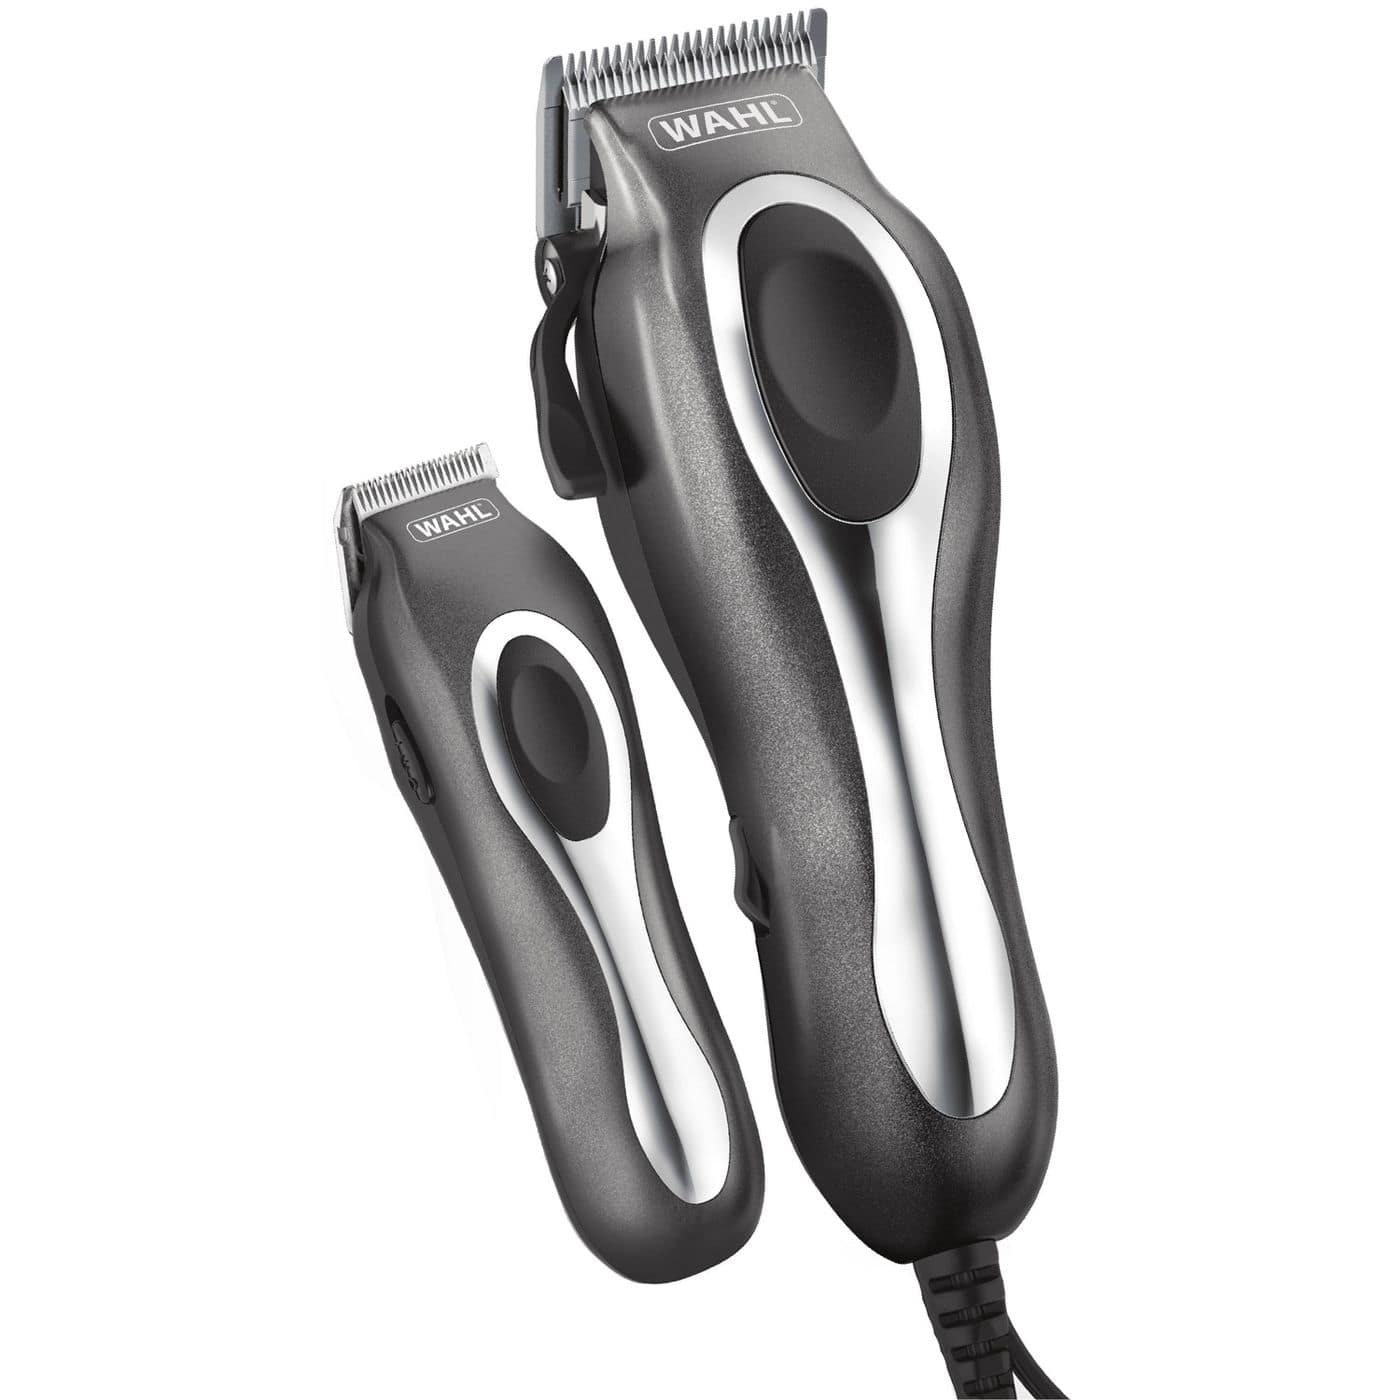 Wahl Deluxe Chrome Pro Complete Men's Haircut Kit $35 YMMV